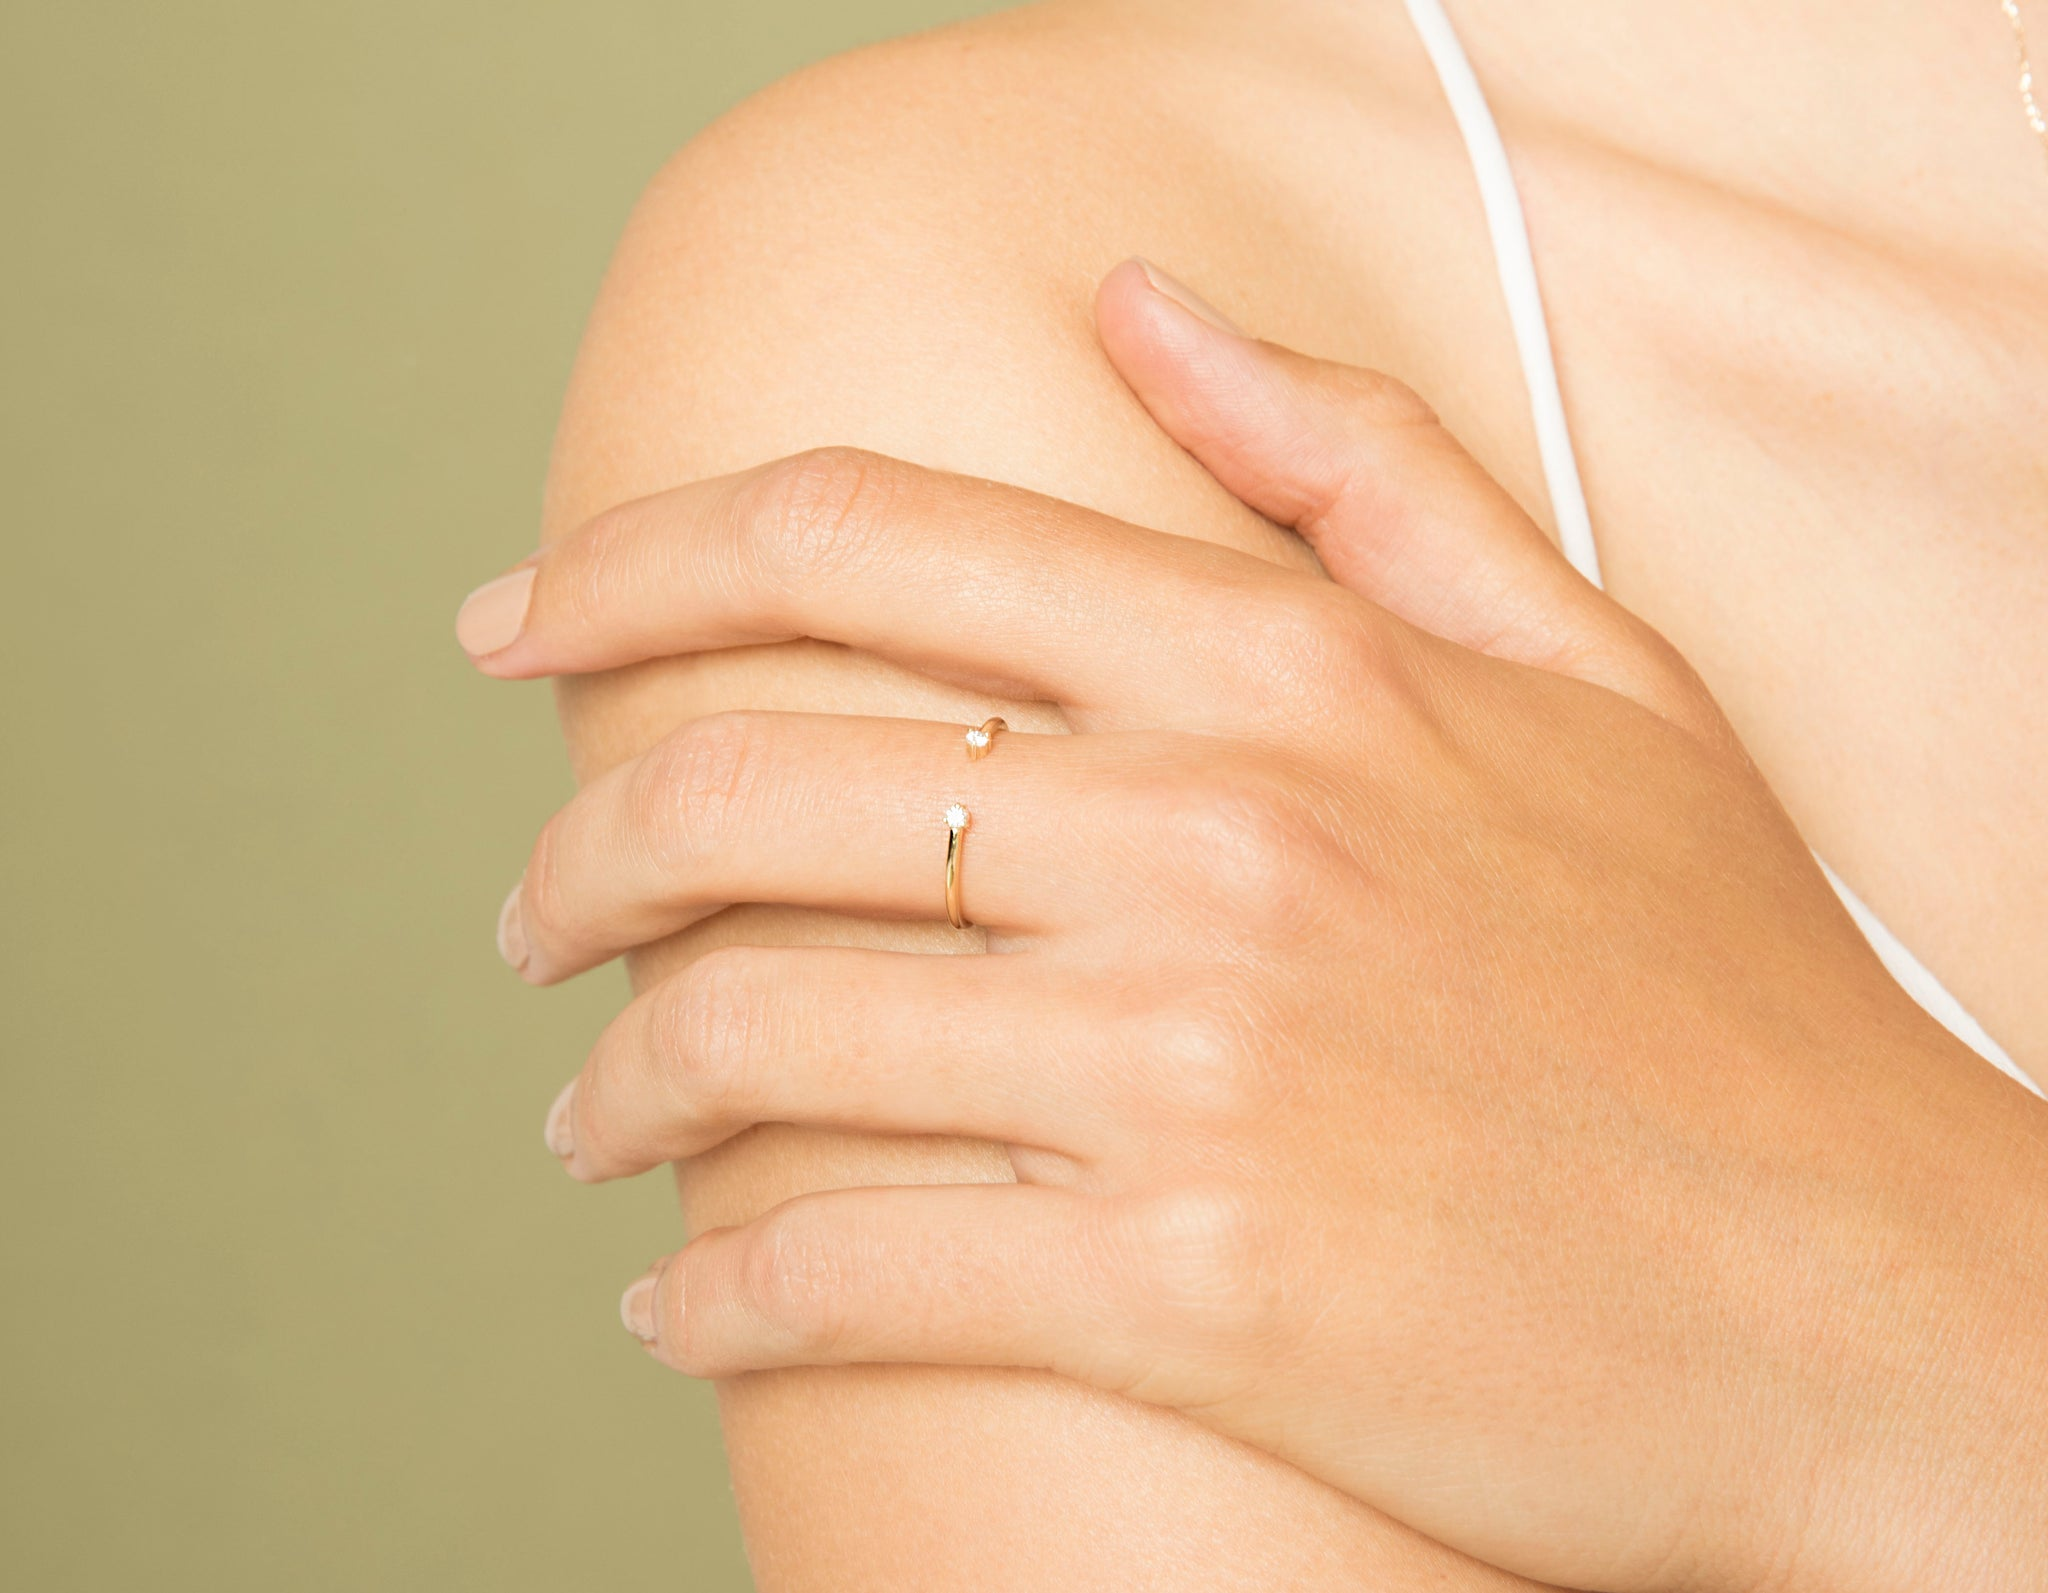 Woman modelling simple sophisticated 14k yellow gold subtle Diamond Dot Cuff ring by Vrai & Oro